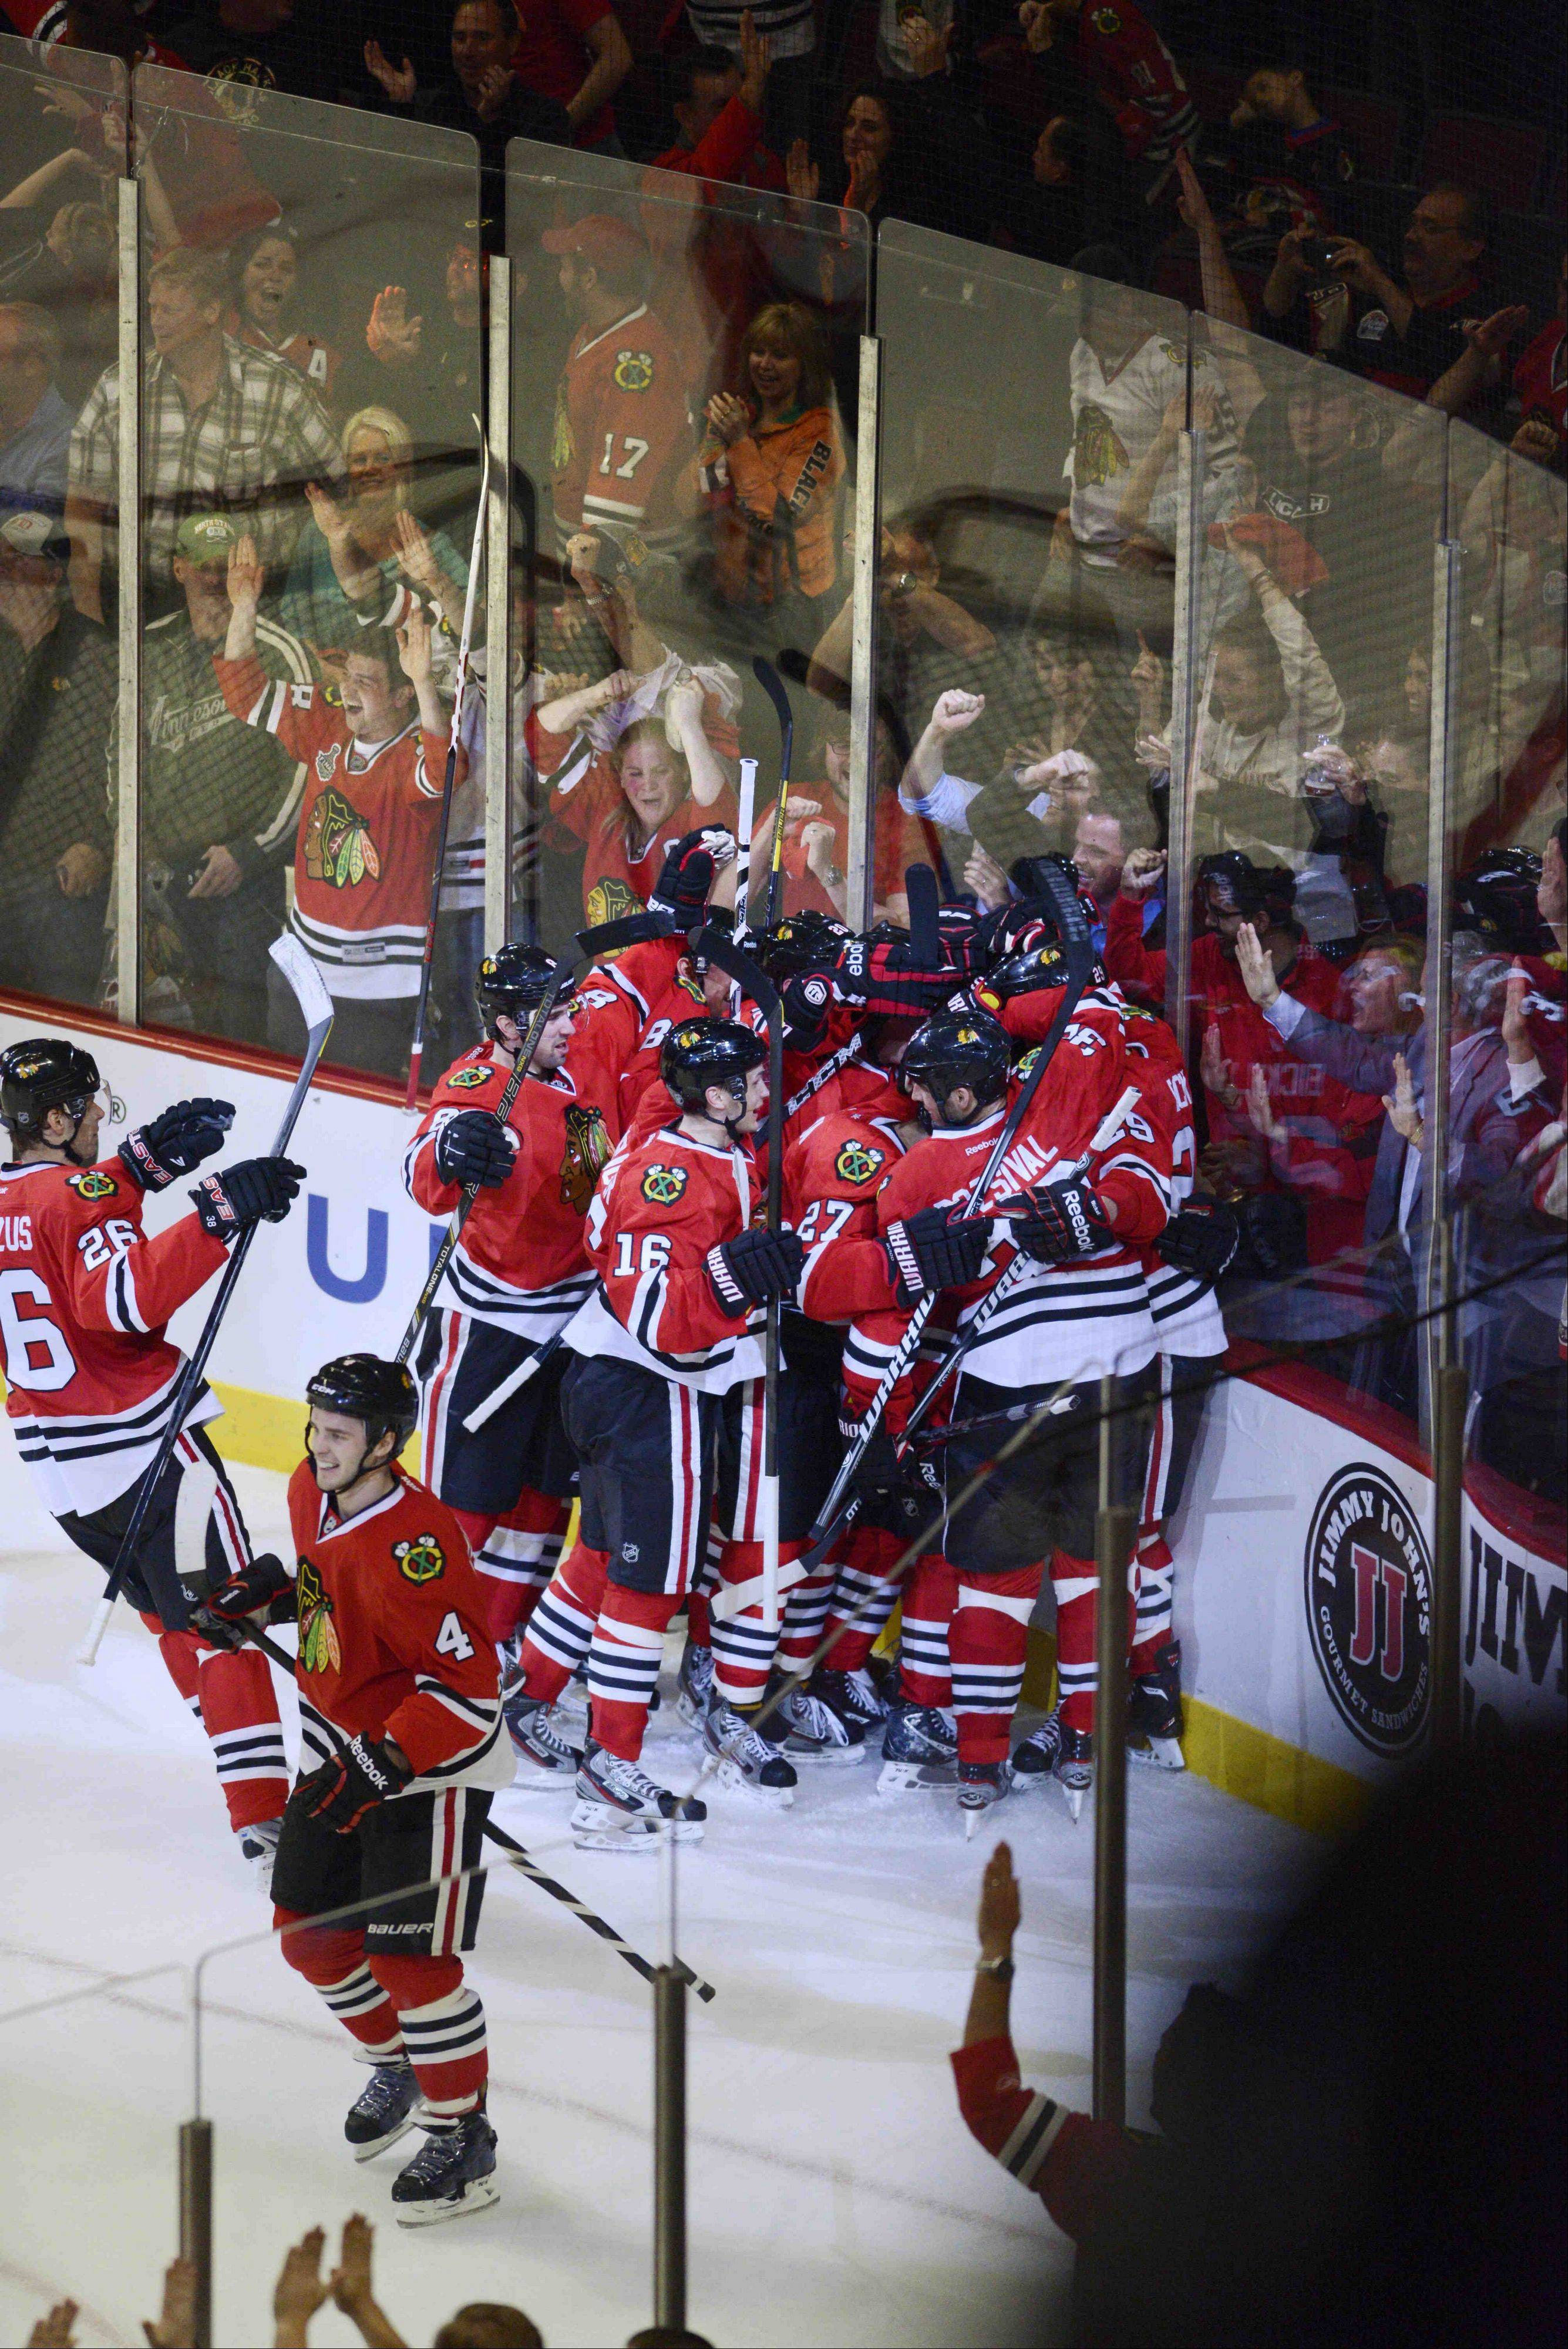 Oduya's pass still hot topic for Blackhawks